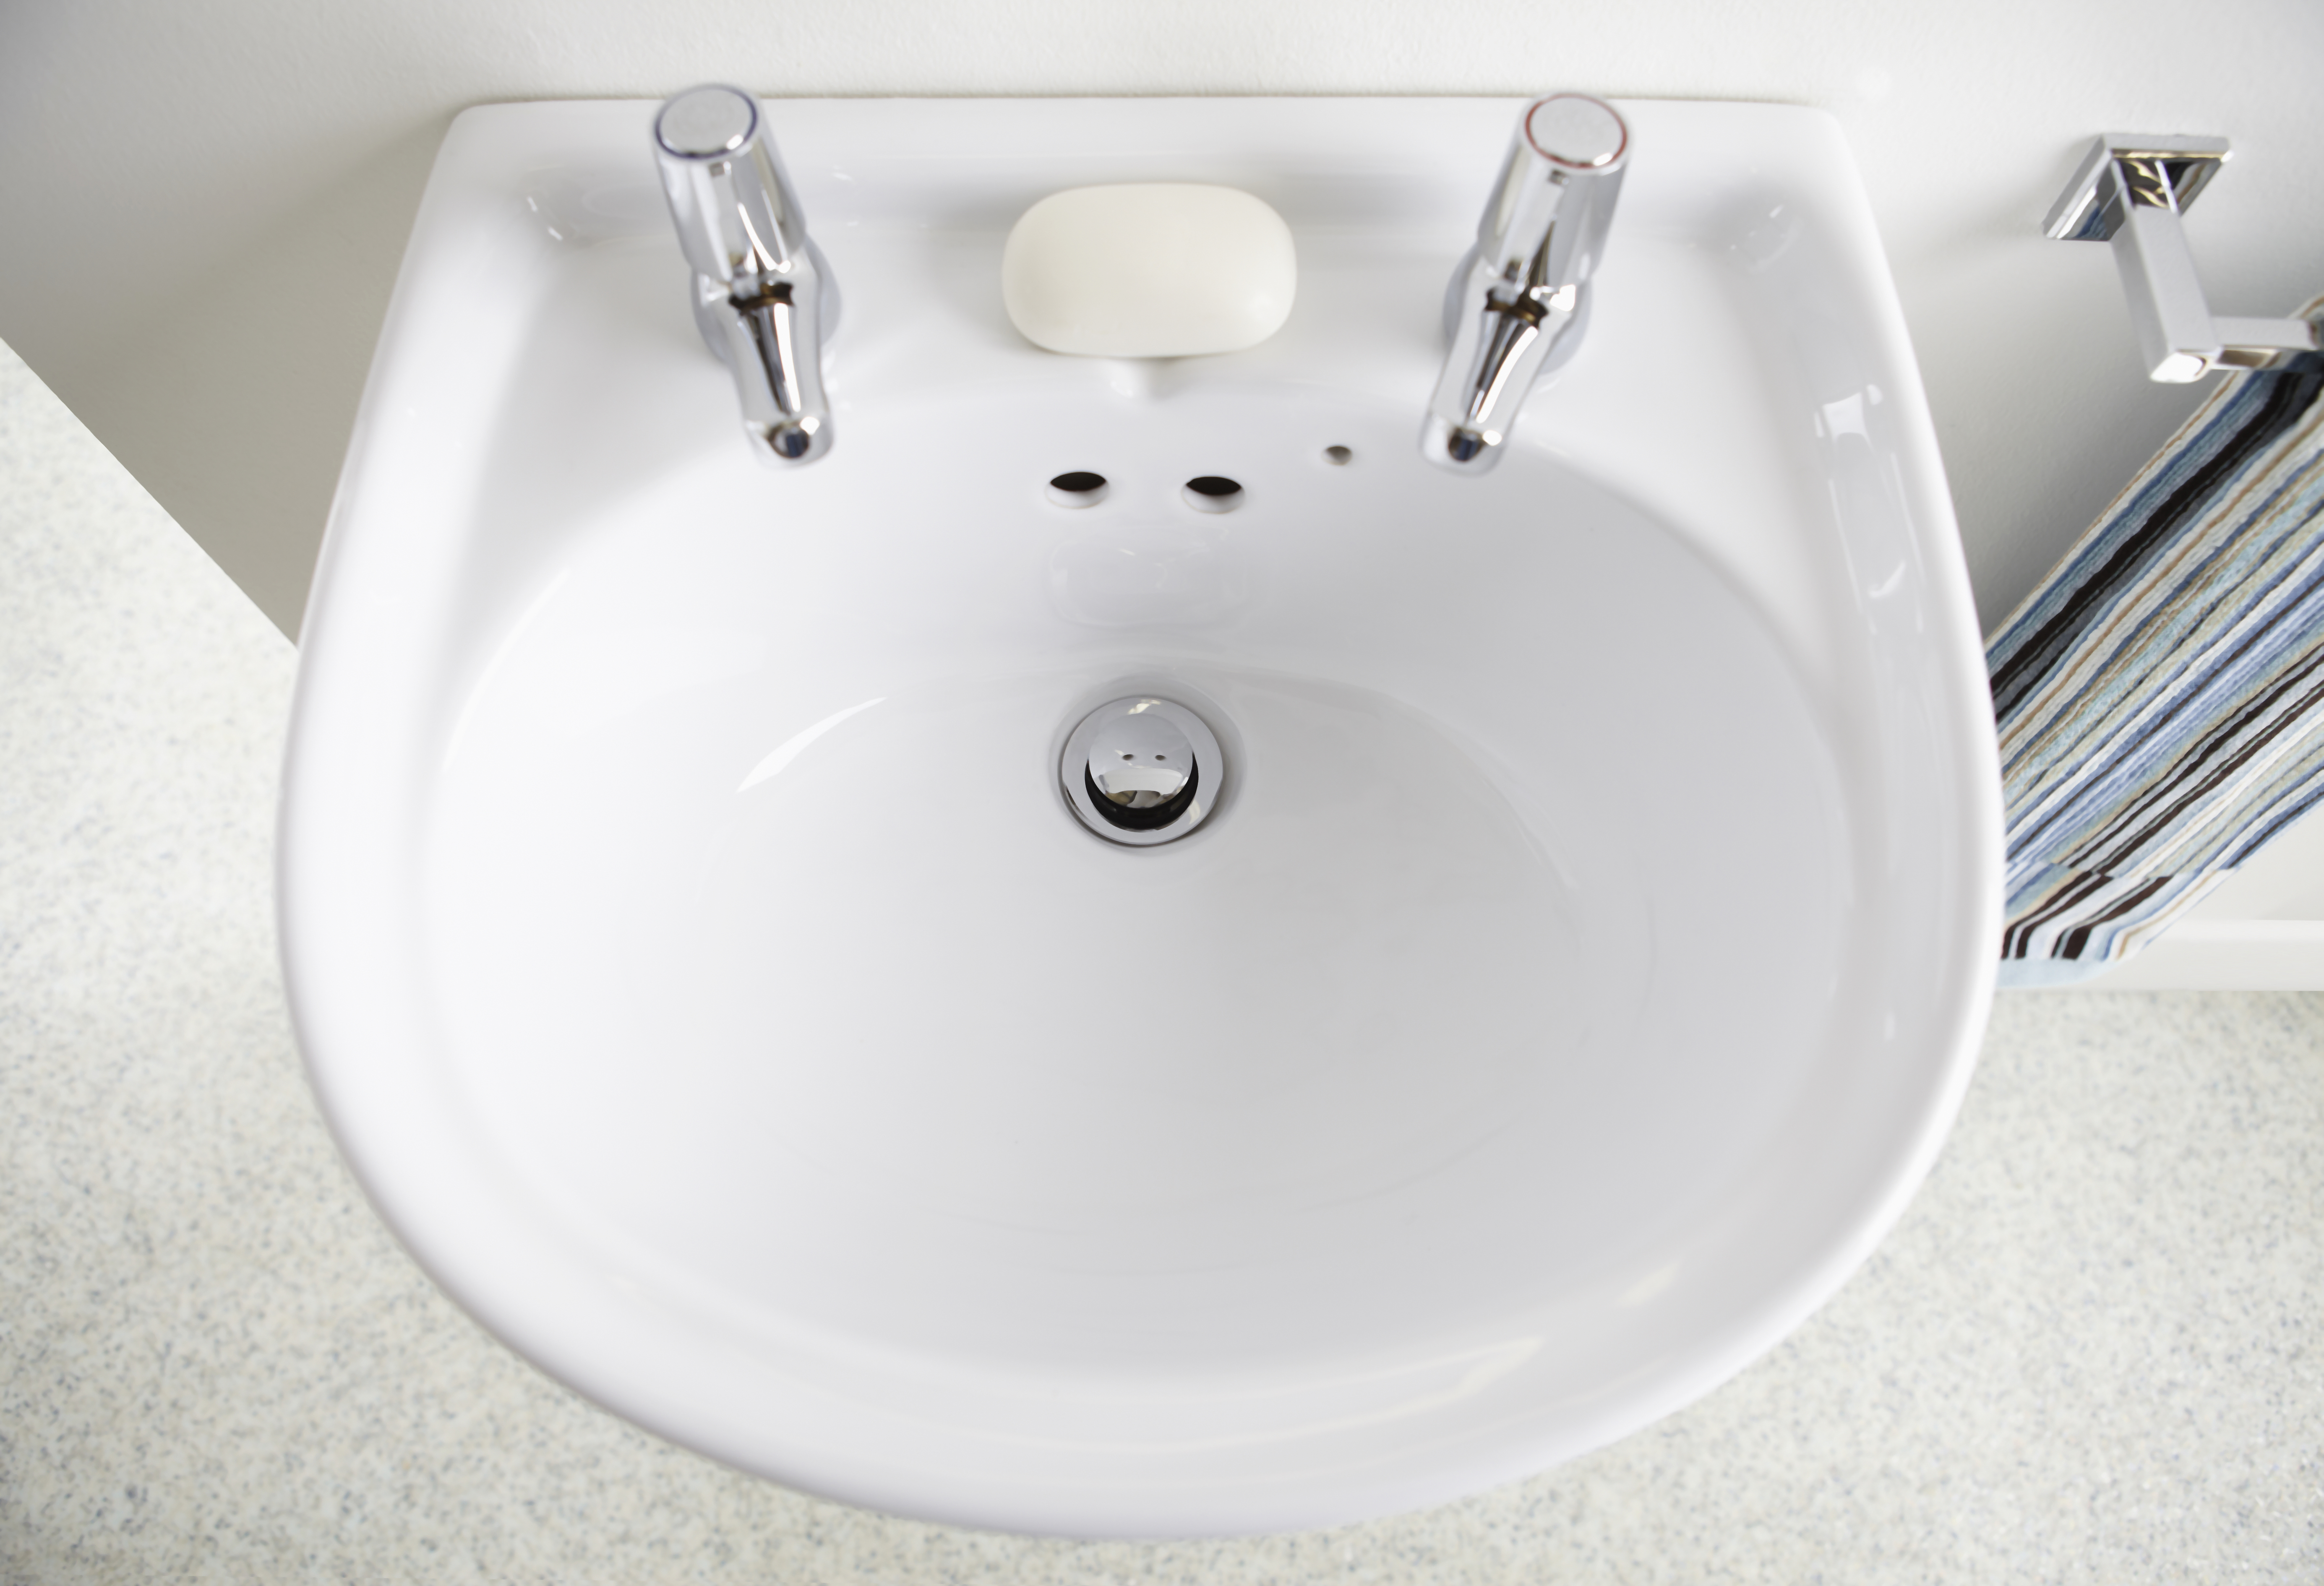 How to Remove Burn Marks on Porcelain Sinks  Home Guides  SF Gate